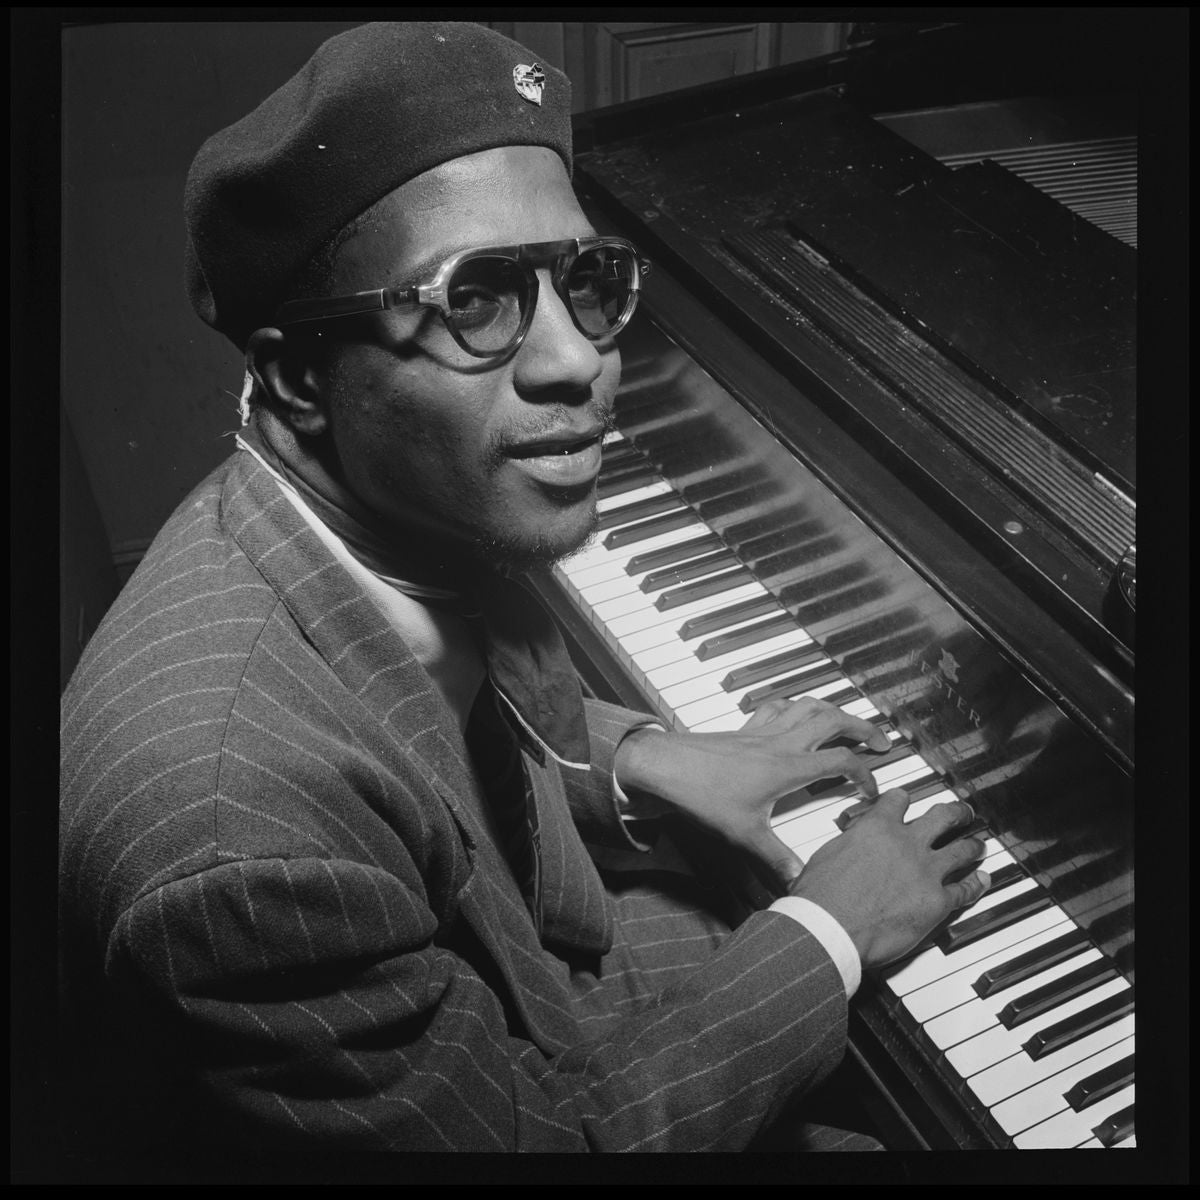 Portrait of Thelonious Monk, Minton's Playhouse by William P. Gottlieb - 1947